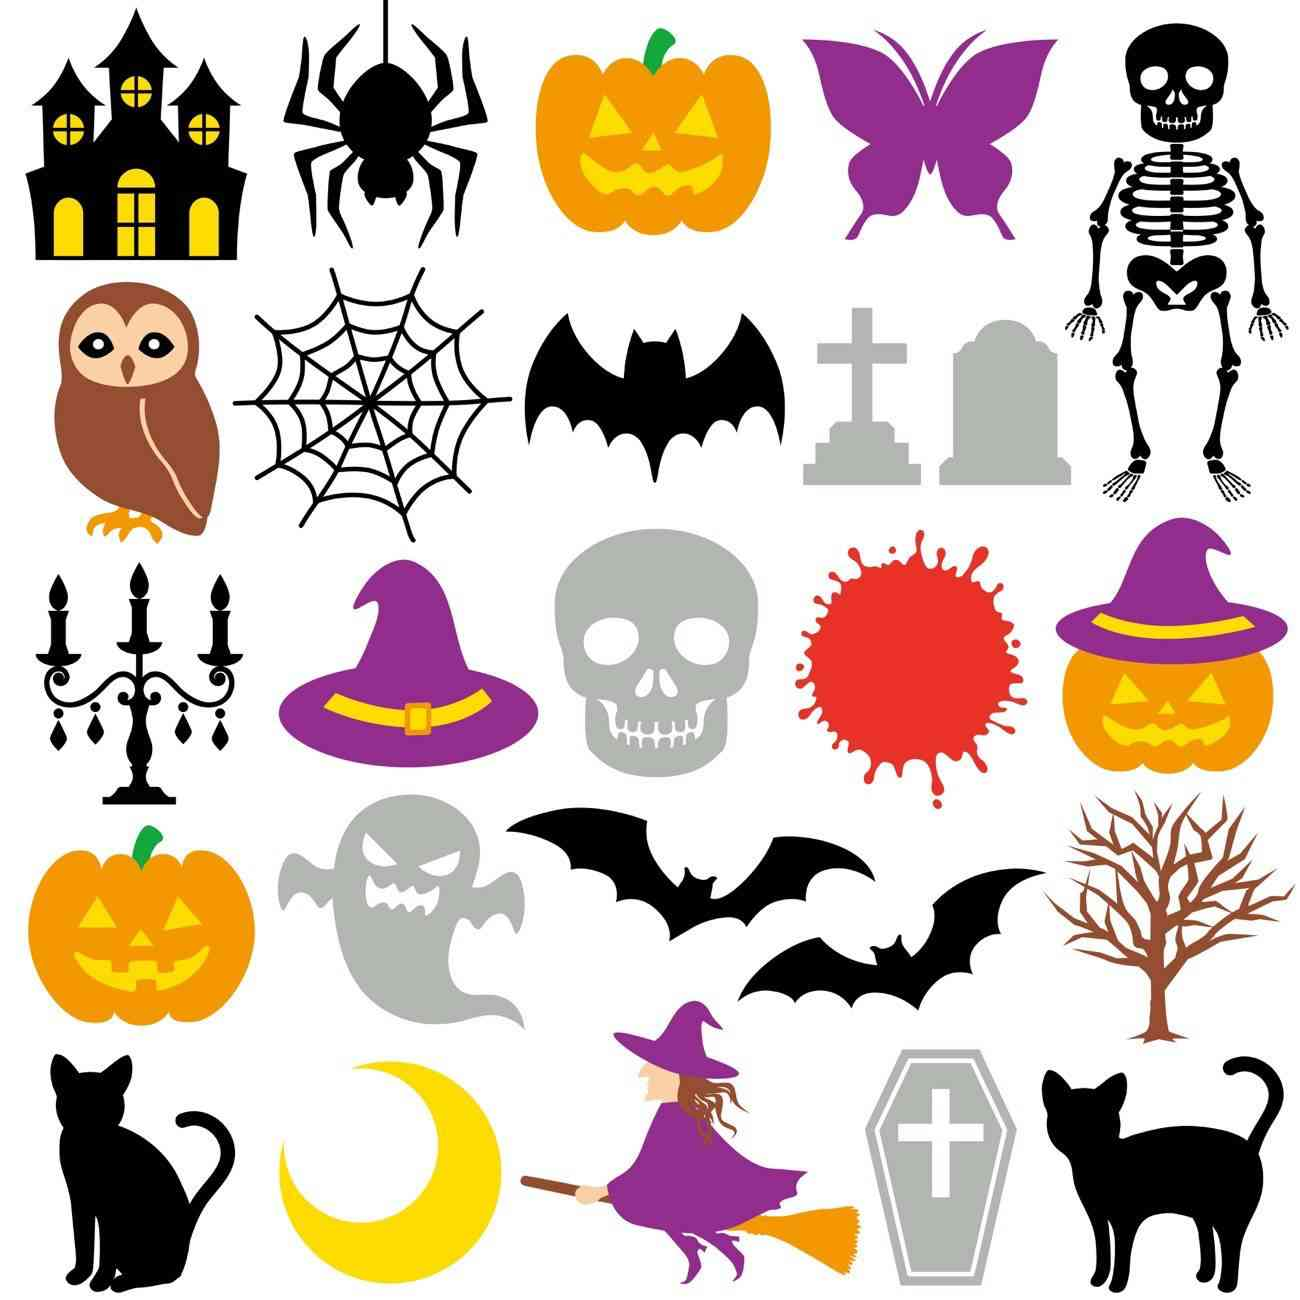 Decorar el sal n para halloween - Ideas decoracion halloween fiesta ...